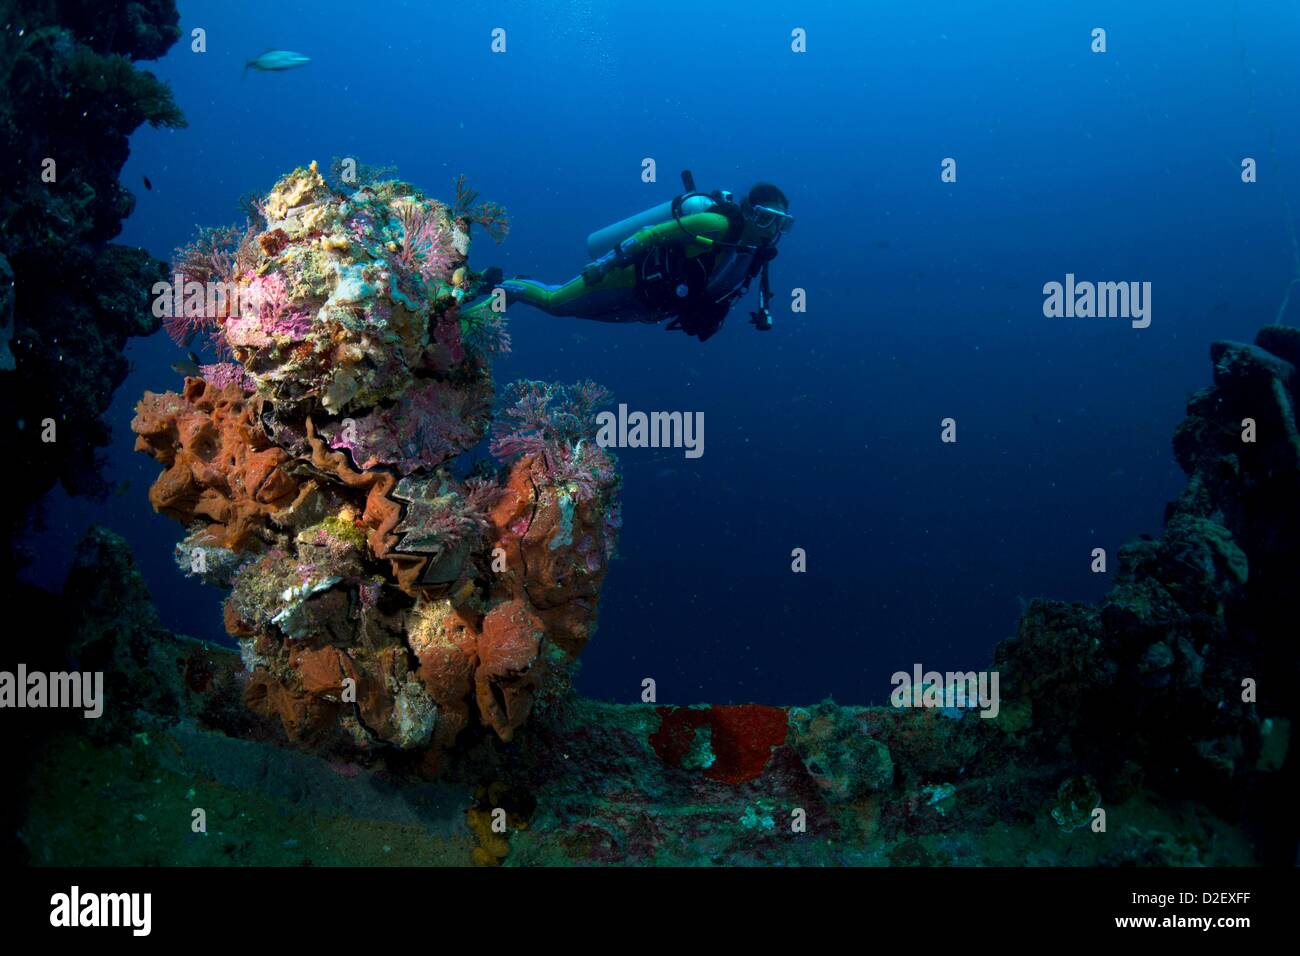 Divers on the Wreck Kyokuzan Maru Japanese freighter, sunk in 1944, Malawig ,Coron, Palawan, Philippines, Asia Stock Photo